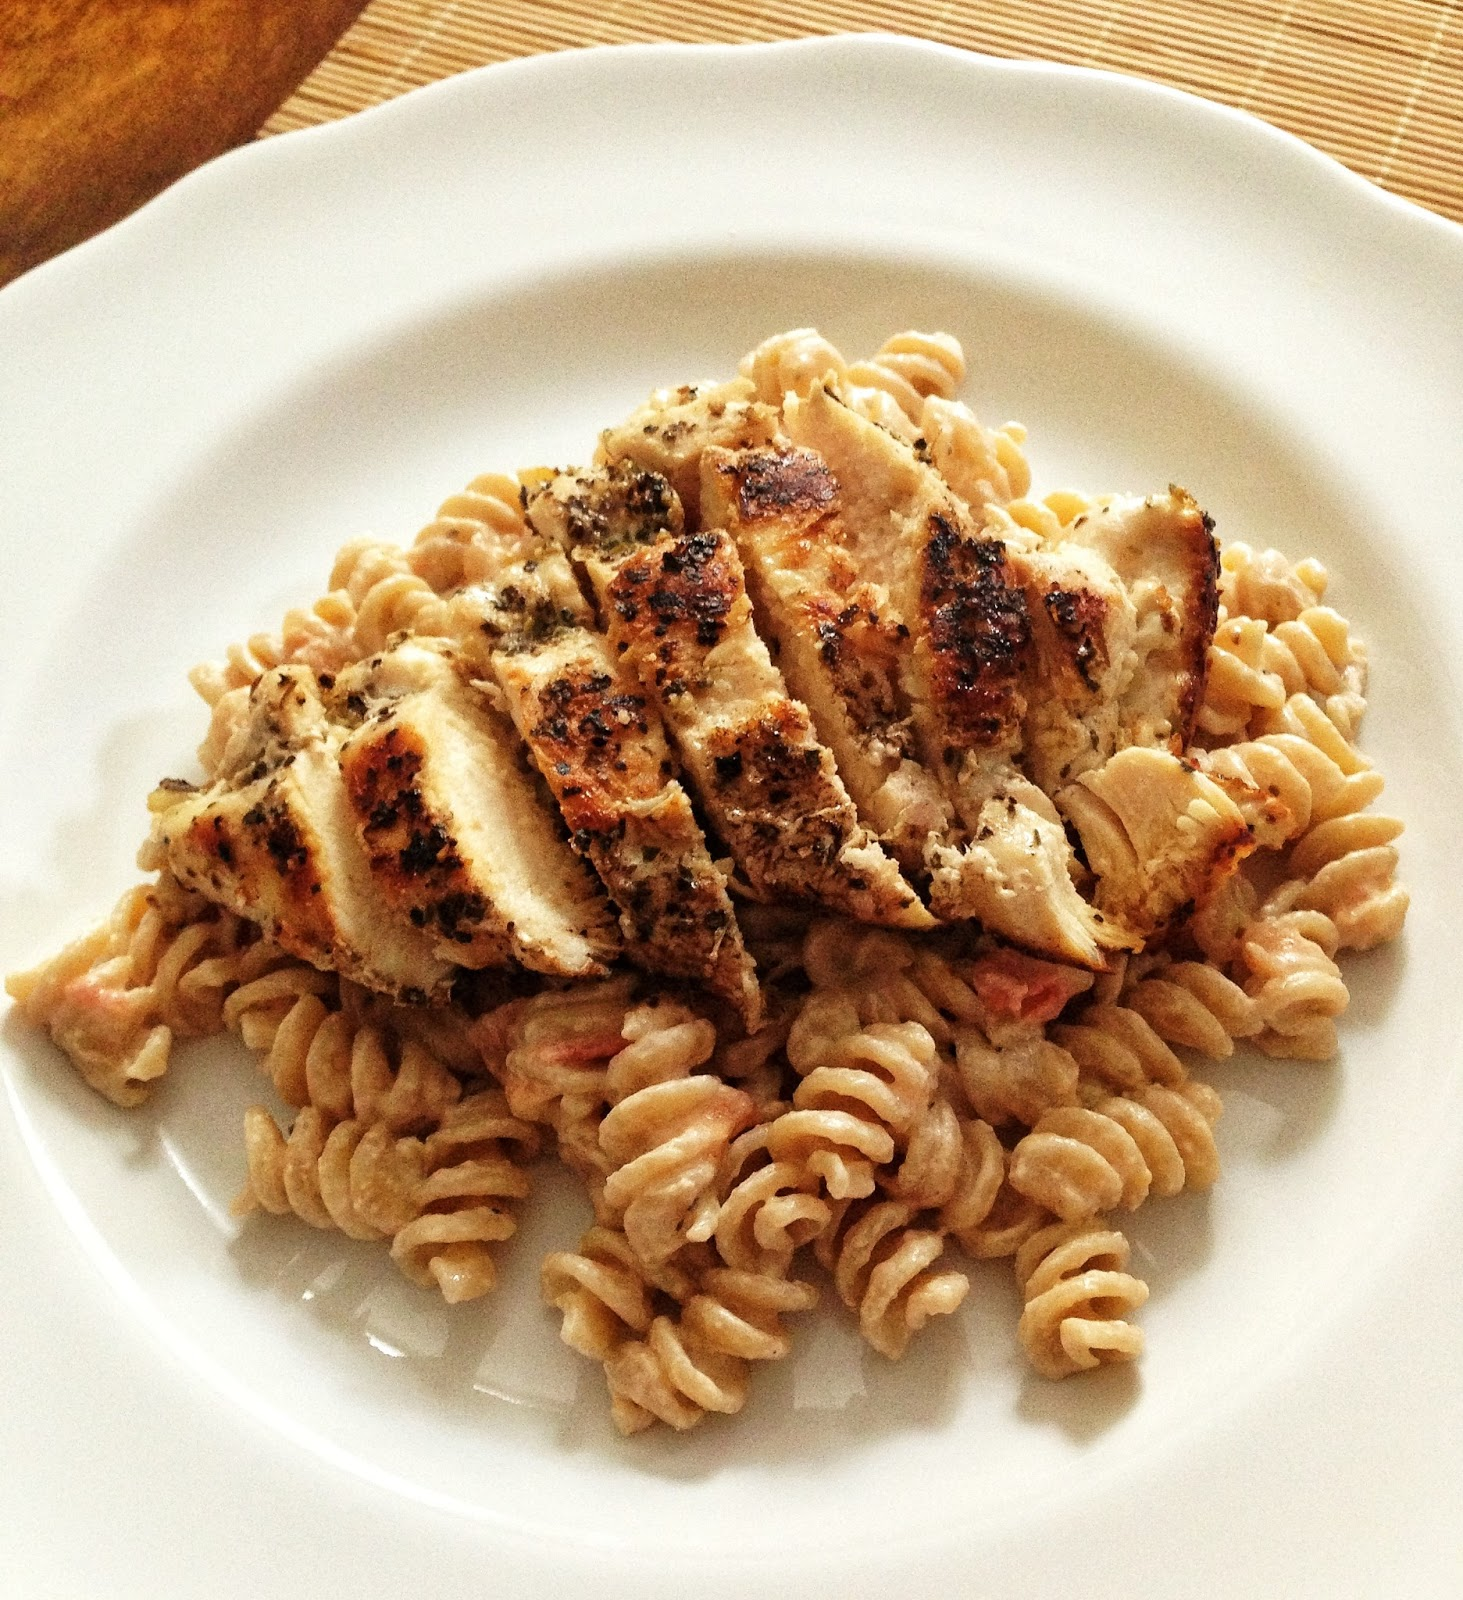 ... whole wheat fusilli with tomato & goat cheese sauce & spiced chicken